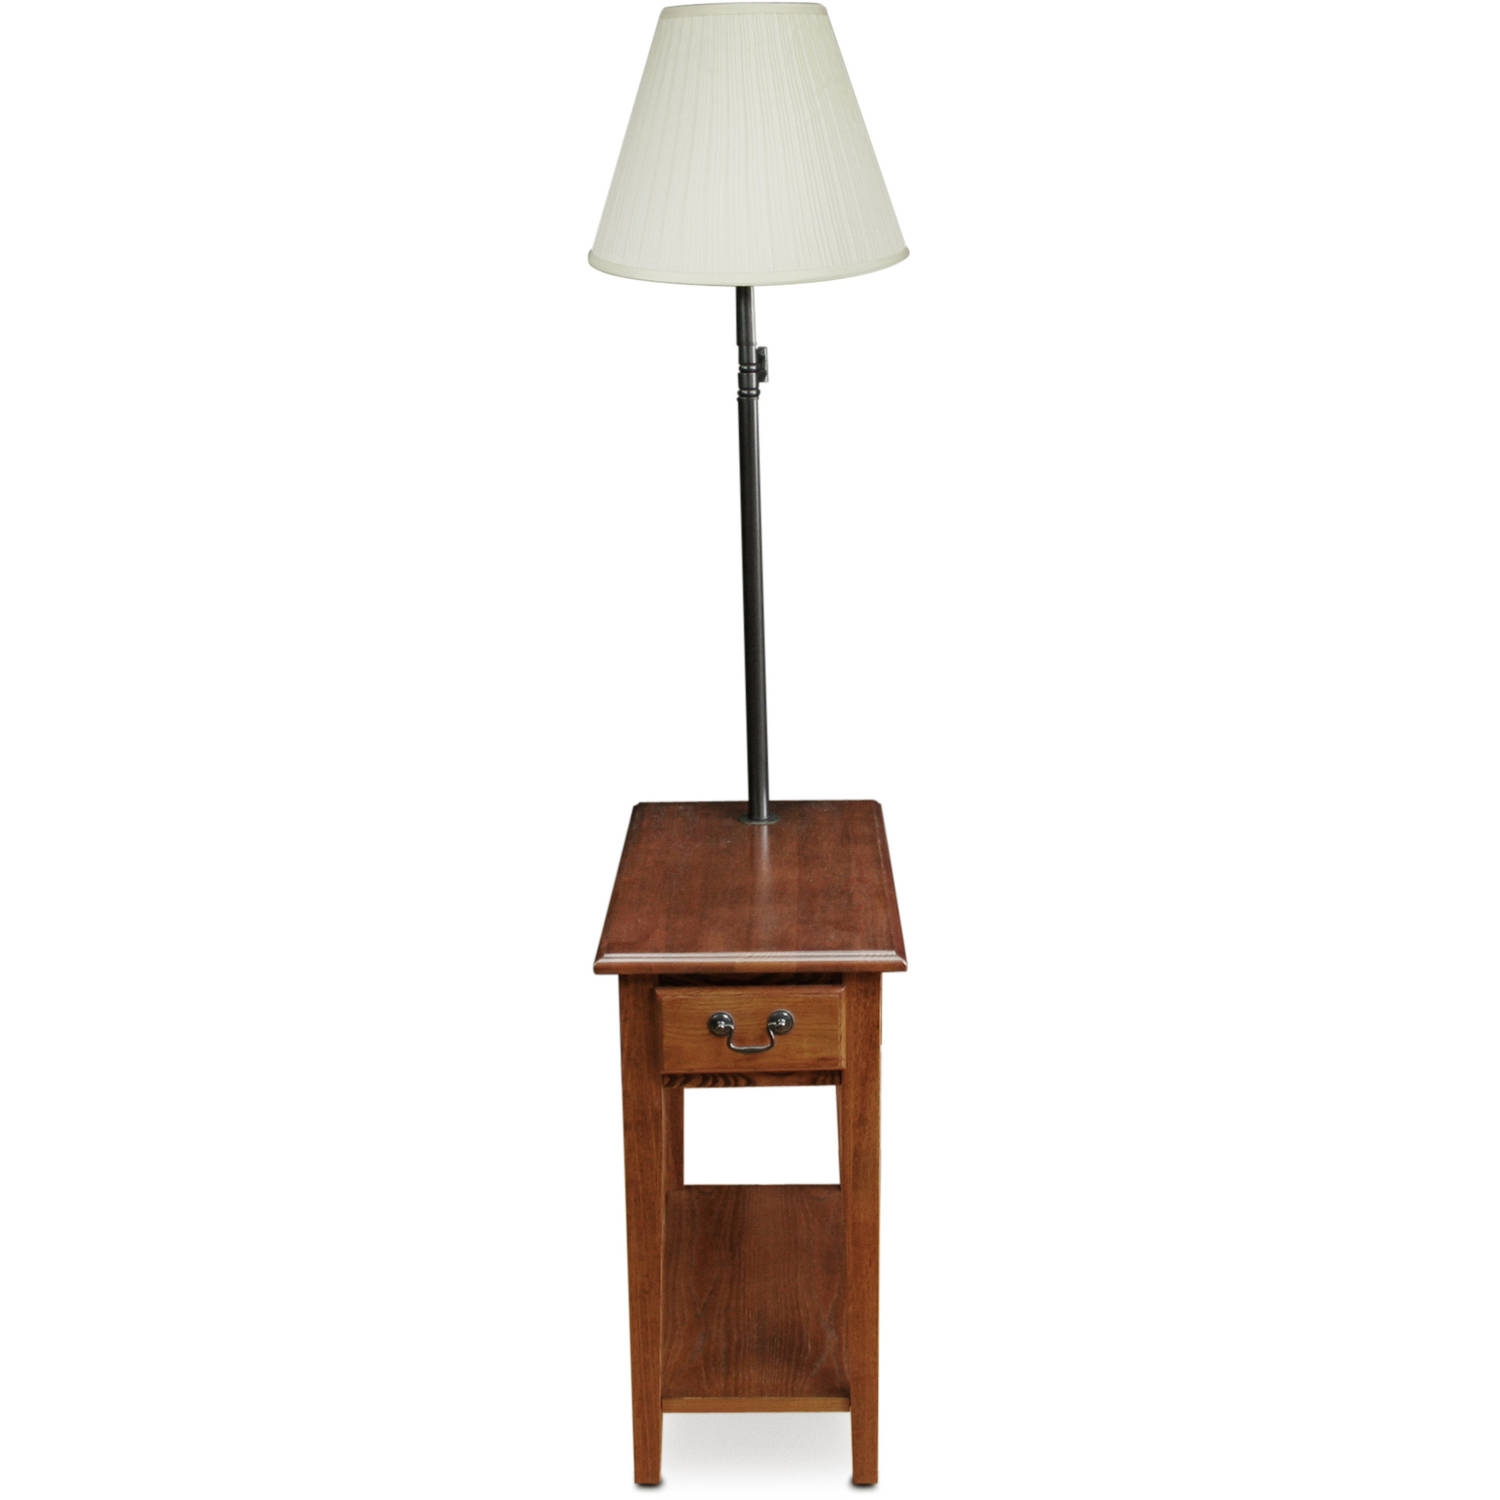 daring end tables and lamps astonishing with floor sauriobee highest nightstands table lamp attached dutchglow wood sets smart furniture for small spaces narrow cup holder queen